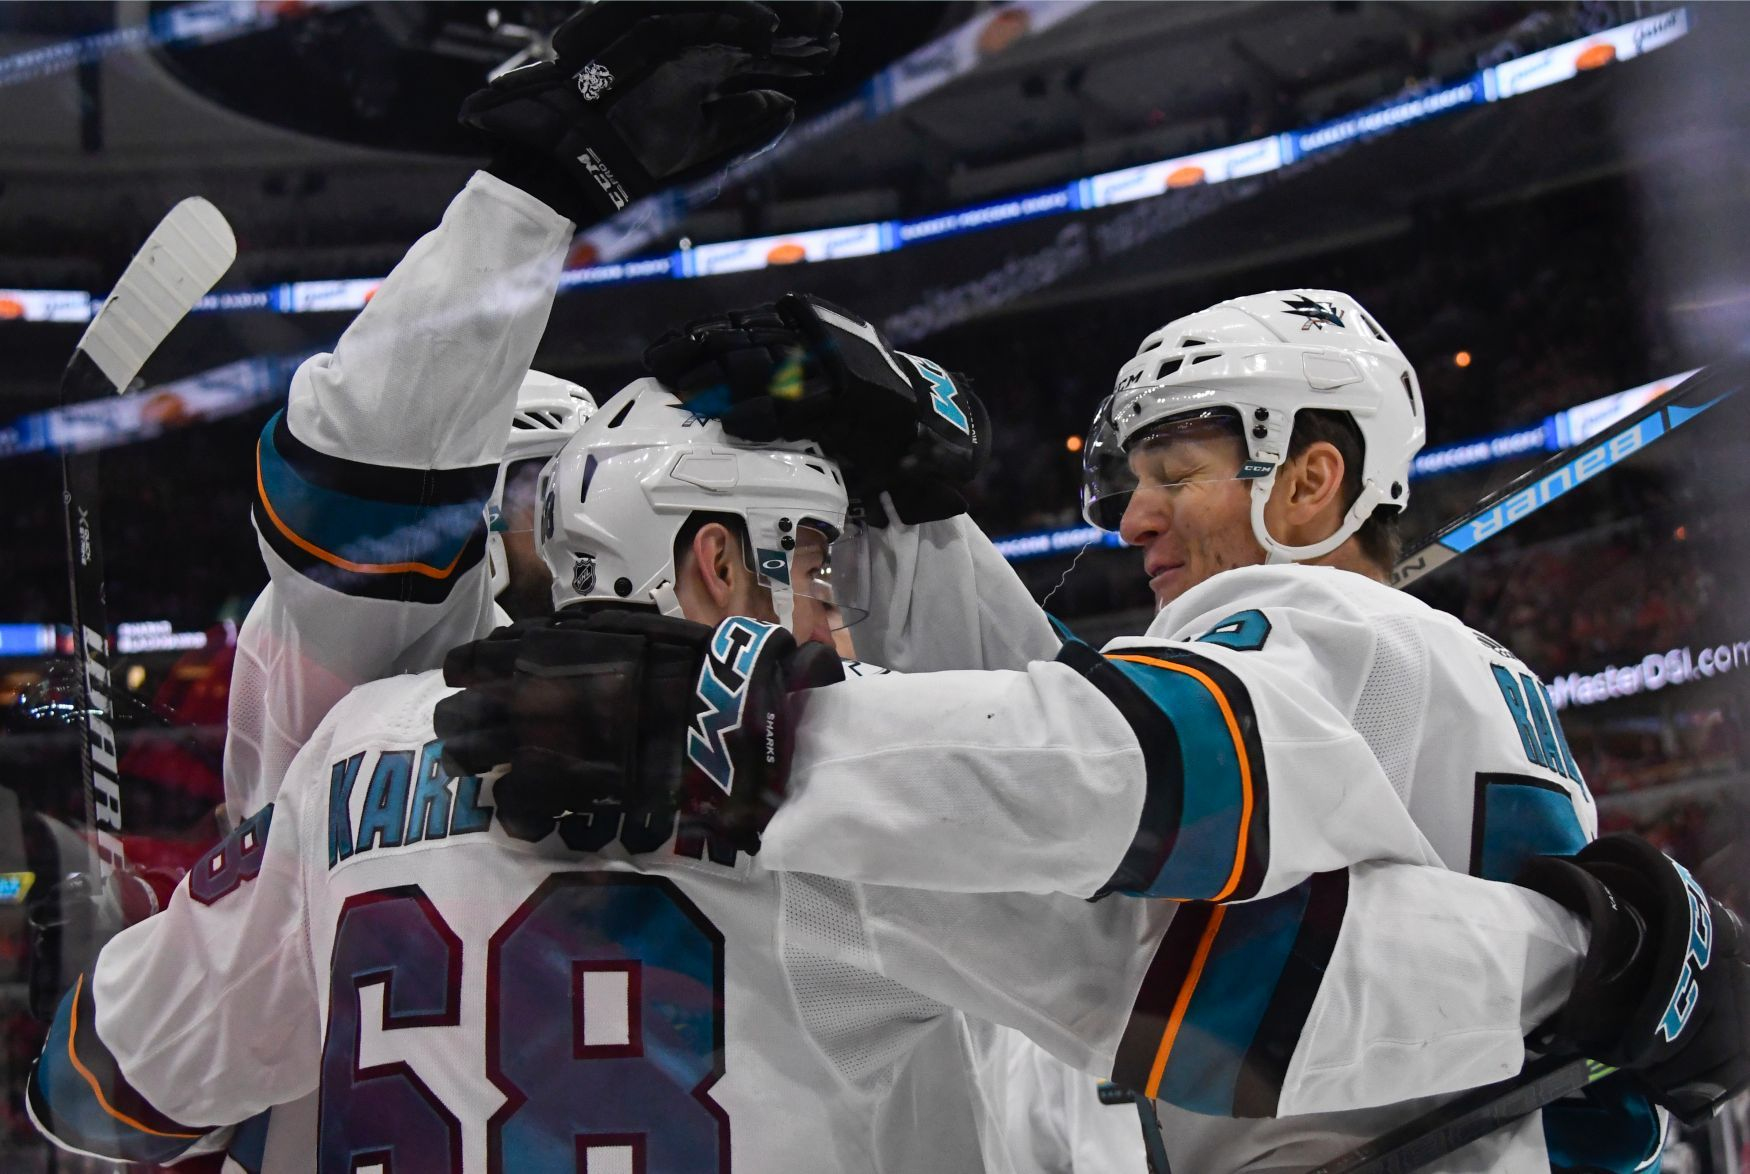 NHL 2018/19, San Jose Sharks, Lukáš Radil, Melker Karlsson a Brent Burns